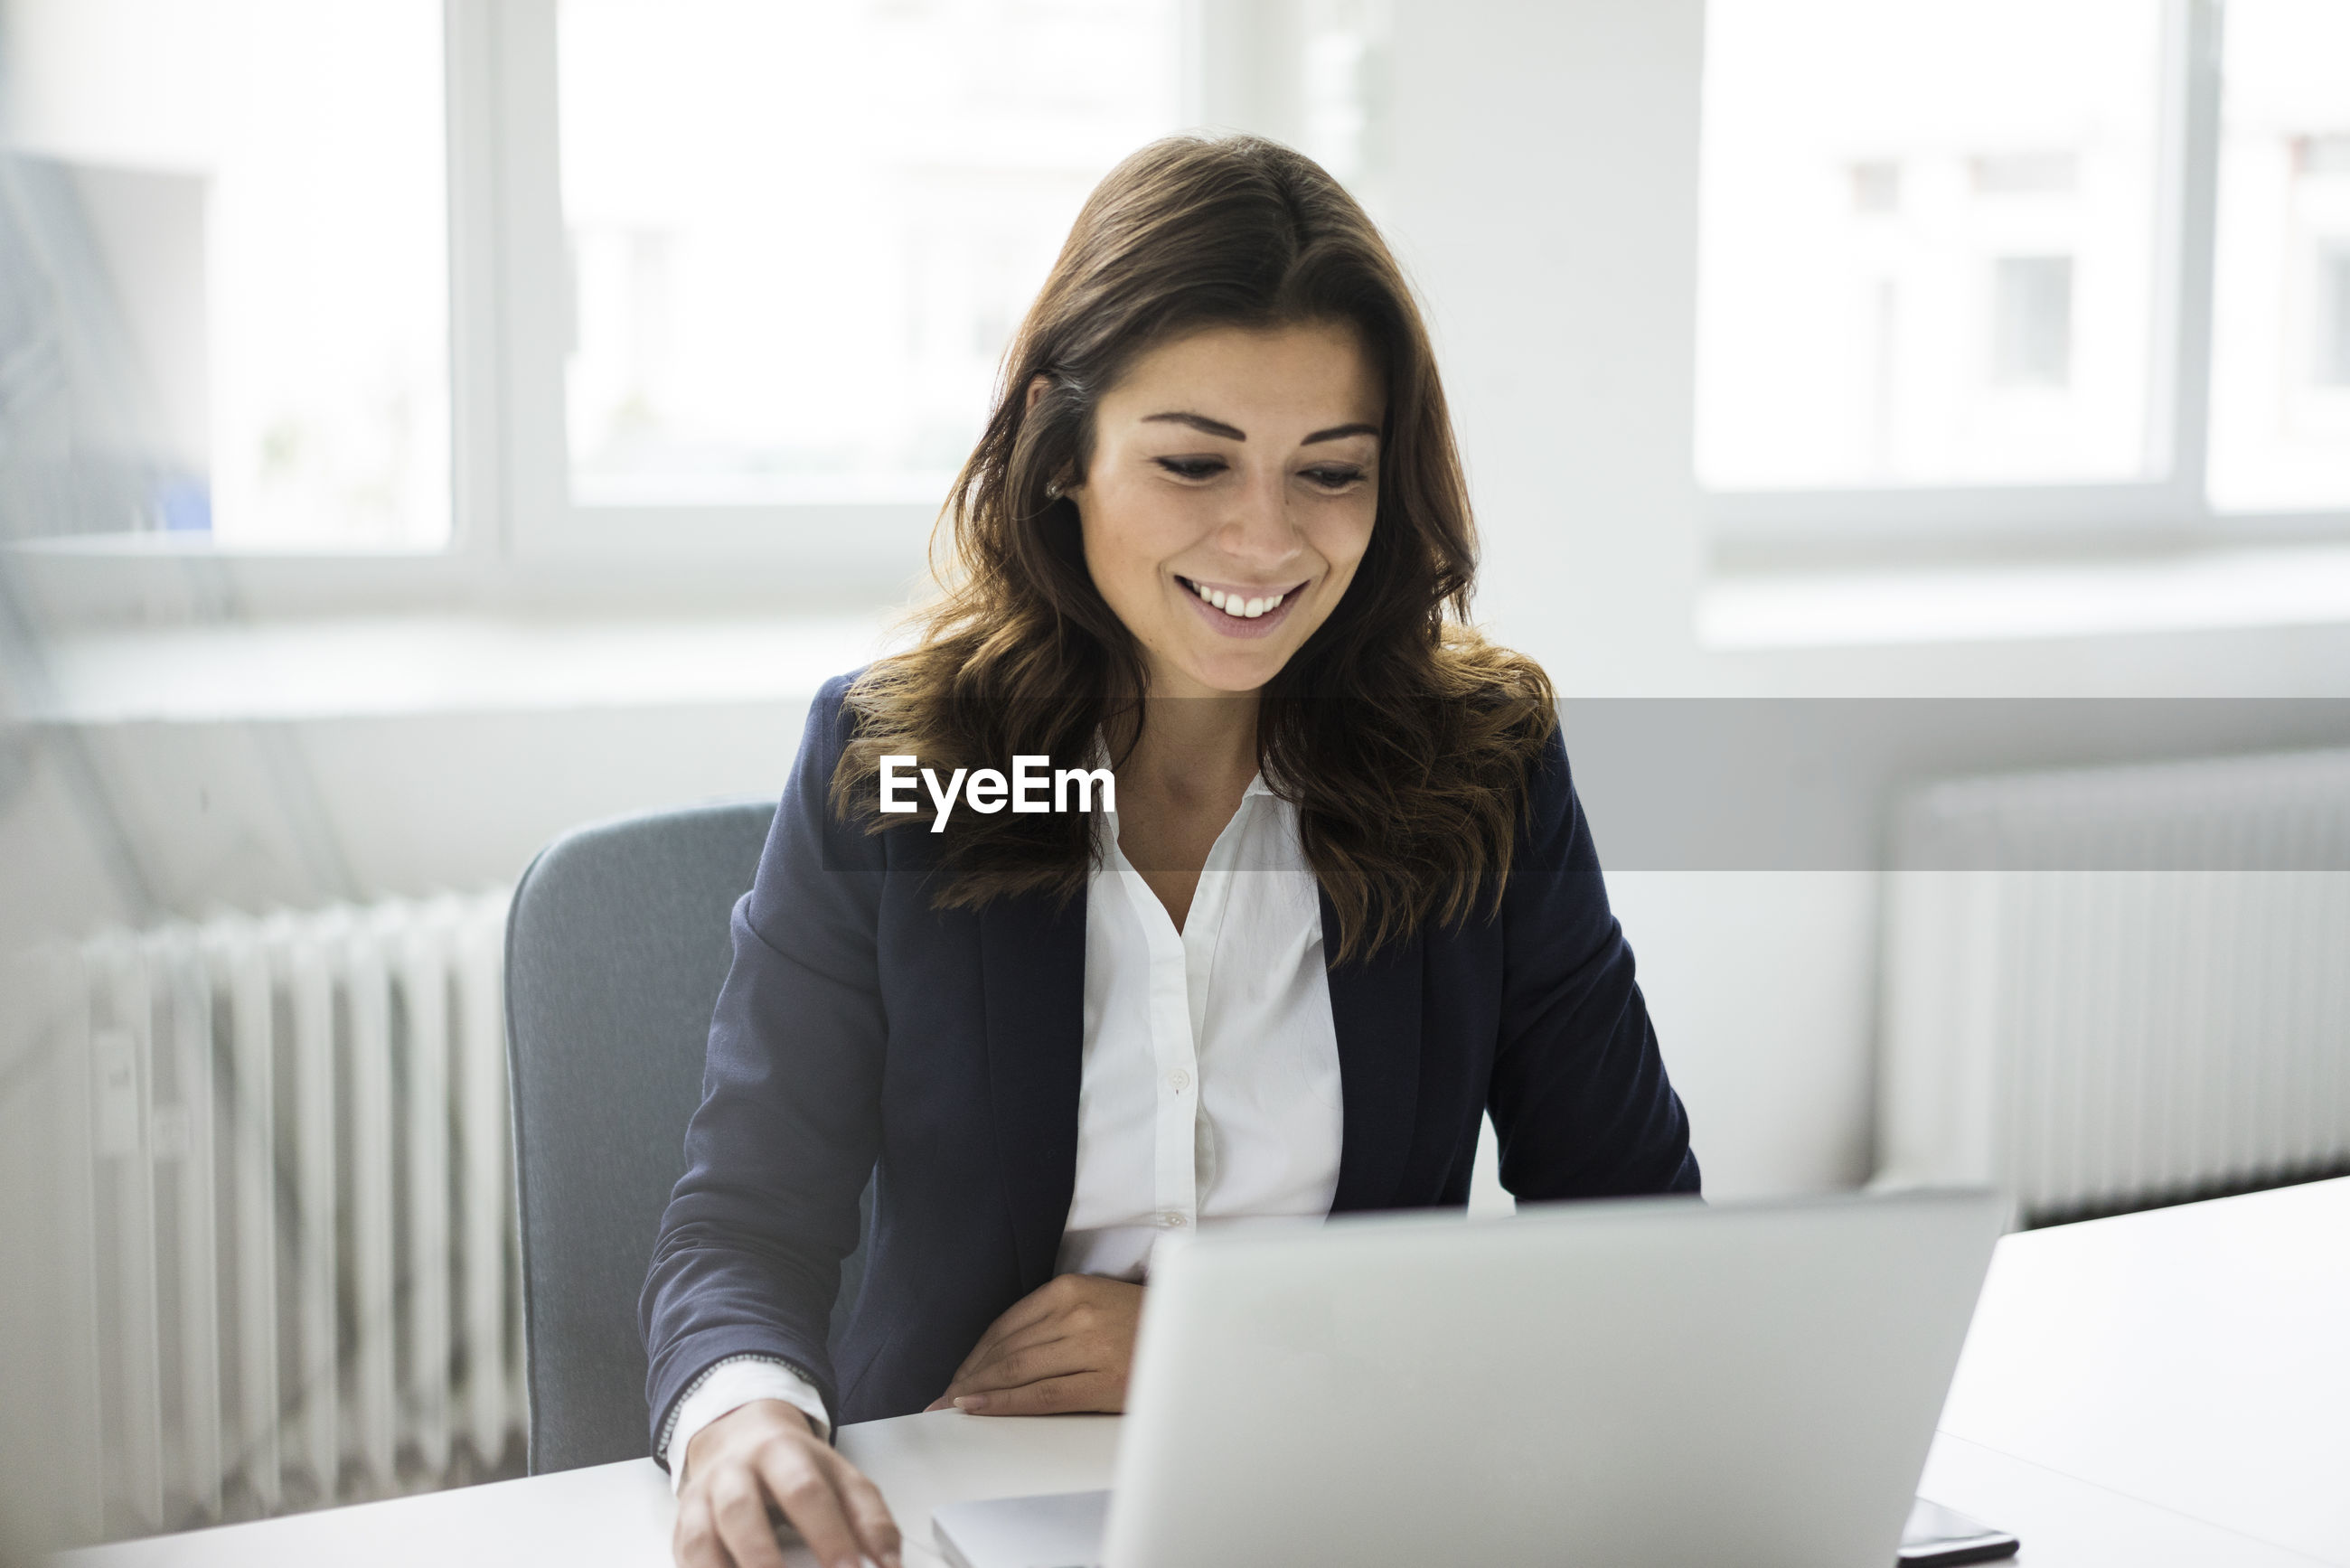 SMILING YOUNG WOMAN USING PHONE WHILE SITTING ON LAPTOP